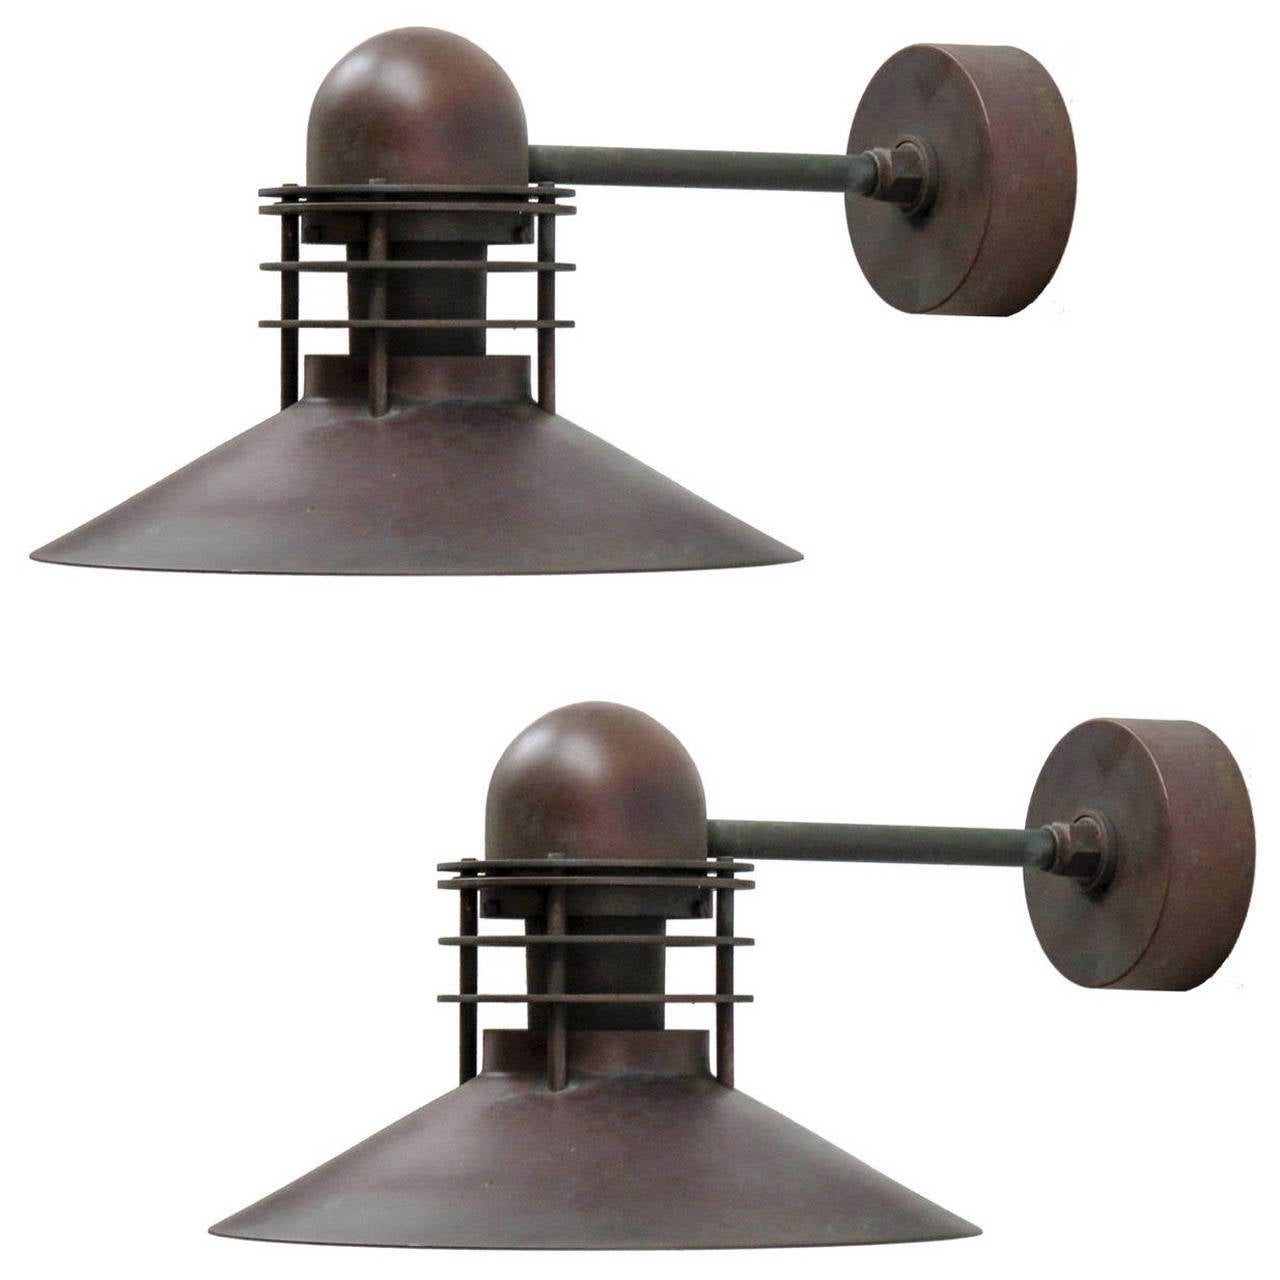 Louis poulsen copper outdoor lamps at 1stdibs louis poulsen copper outdoor lamps 1 arubaitofo Choice Image